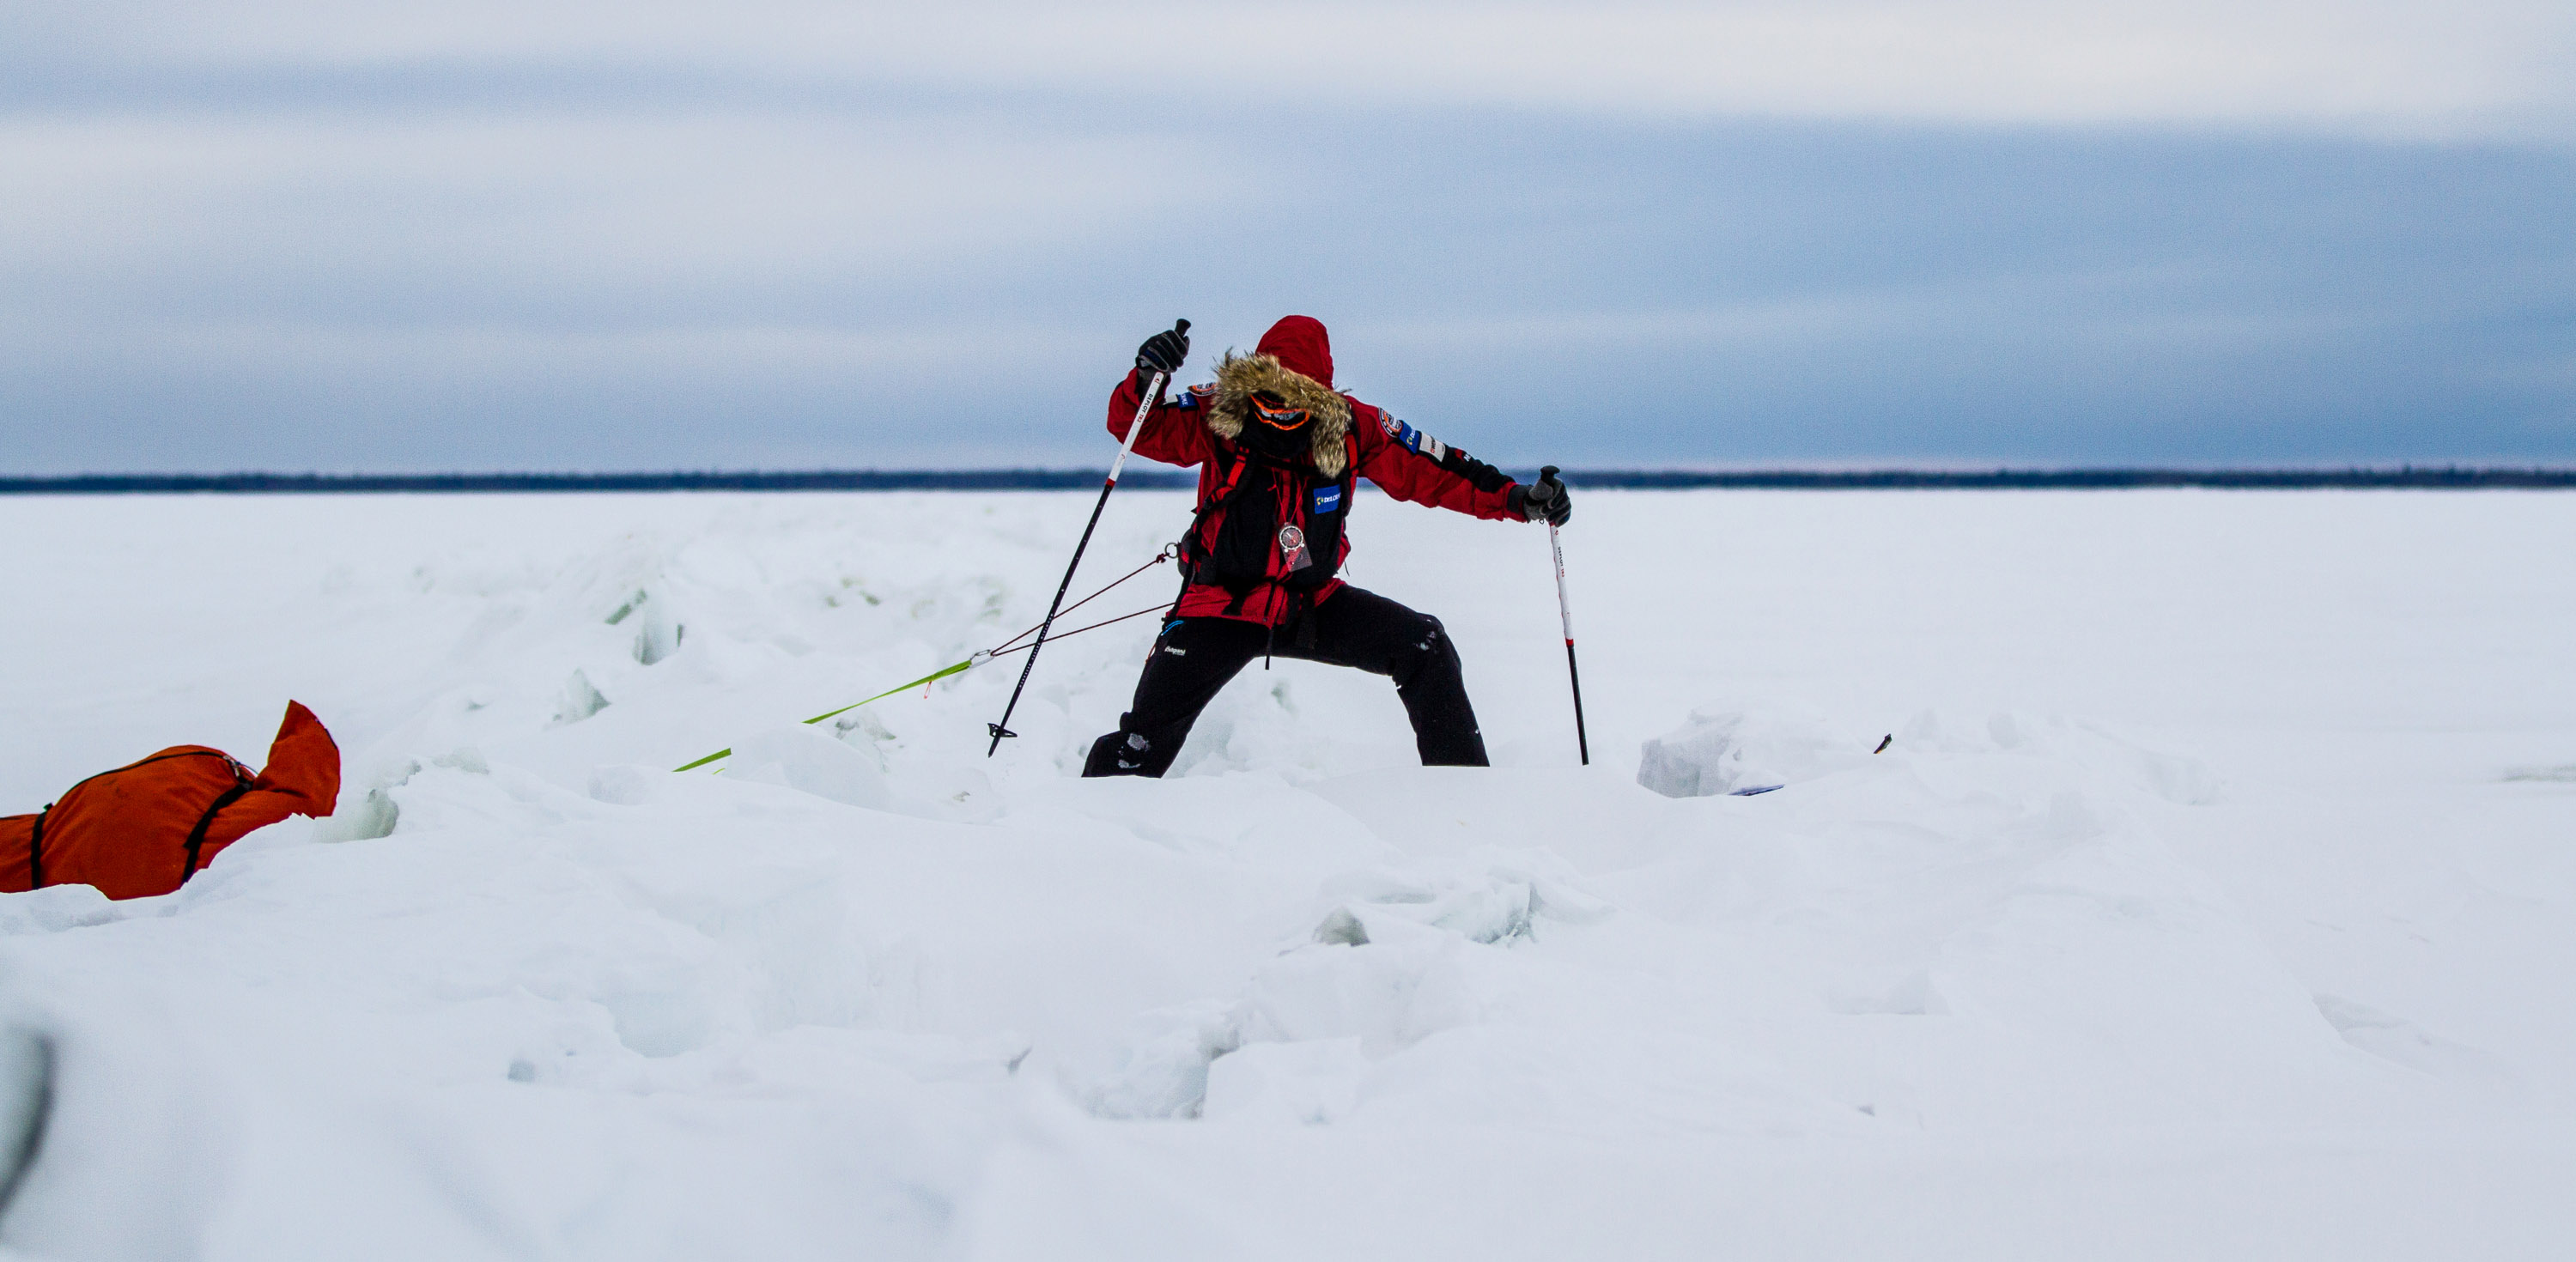 In 2010 he became the first person in history to complete expeditions to the South Pole North Pole and summit of Everest in a 365-day ... & Eric Larsen Heads for North Pole on u0027Last Northu0027 Expedition - The ...